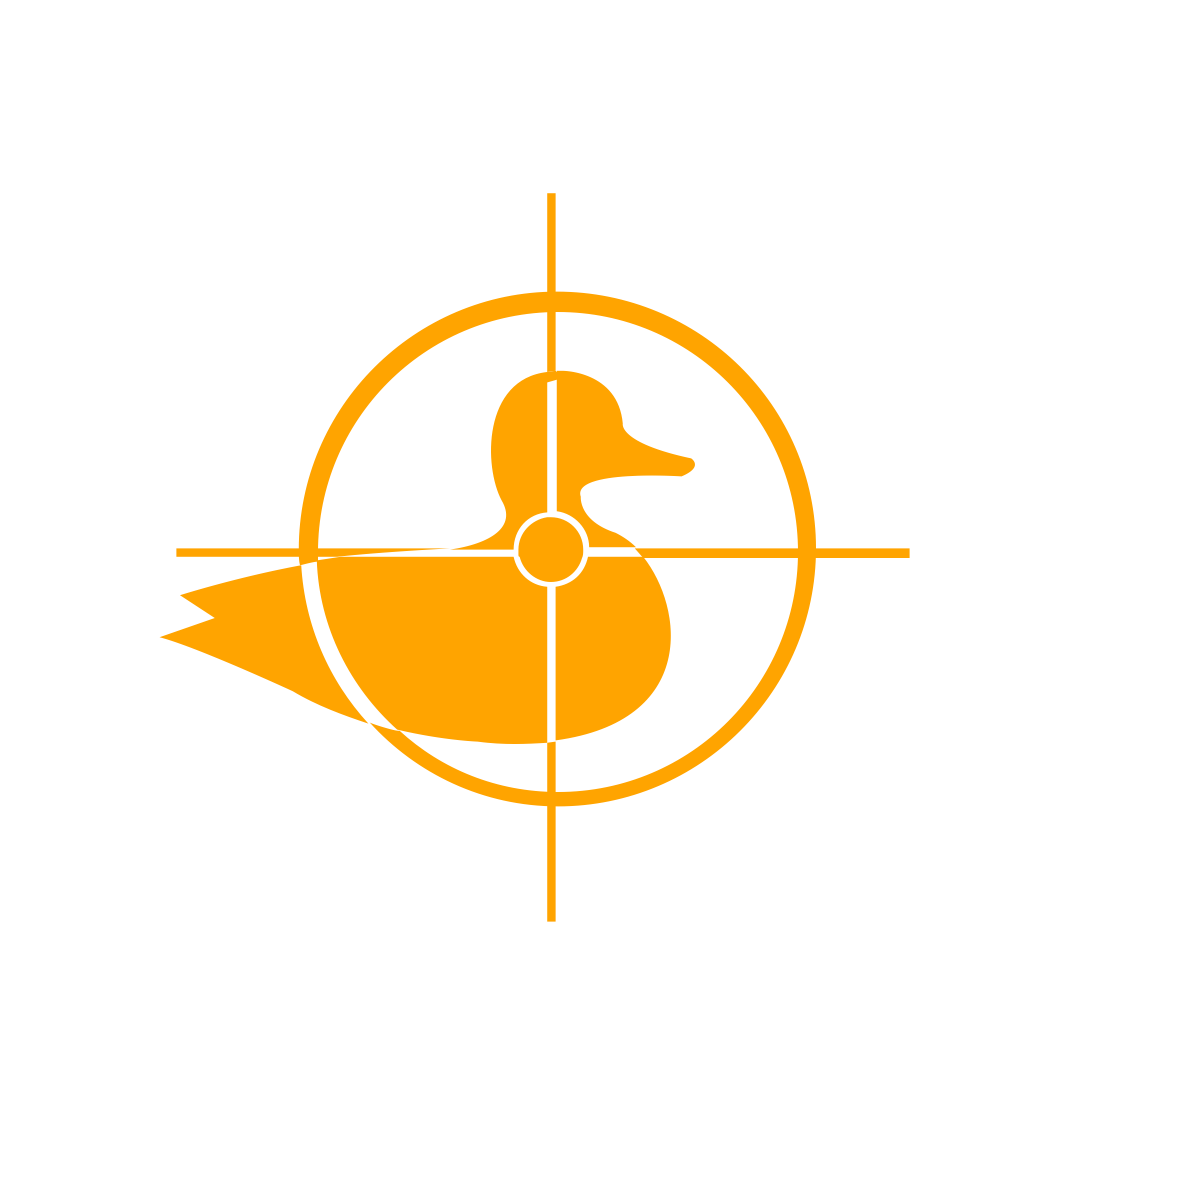 np_duck-hunting_112812_FF9300.png